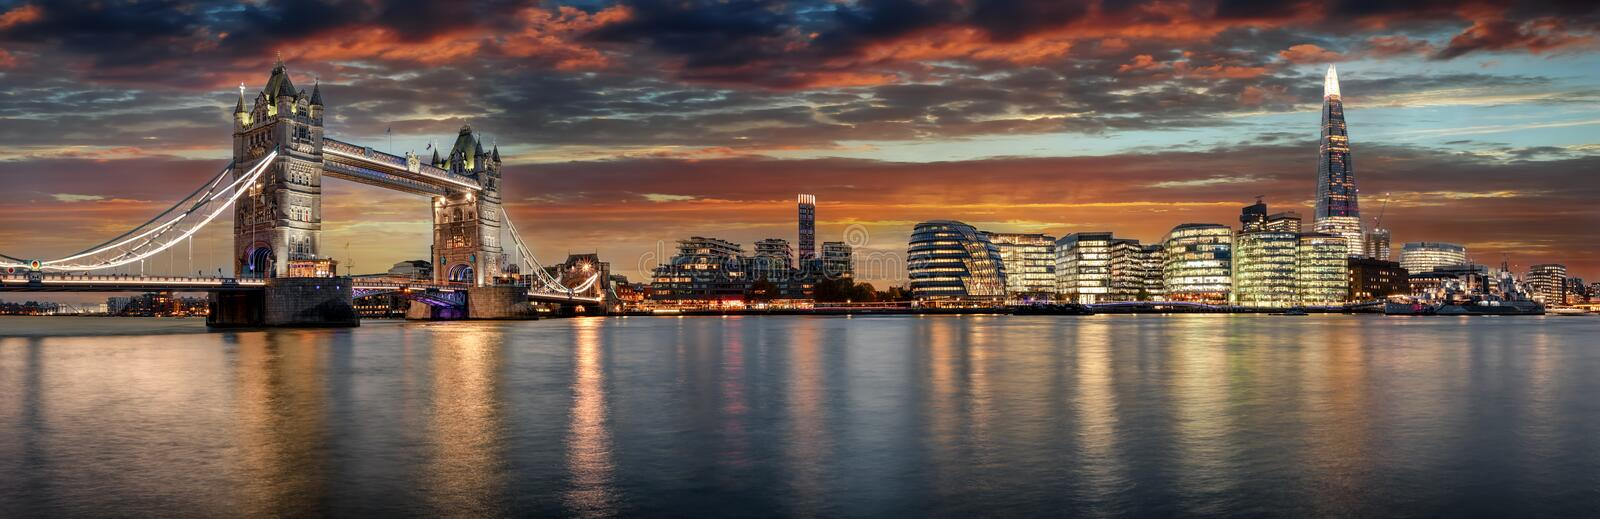 From the Tower Bridge to London Bridge during sunset stock photos